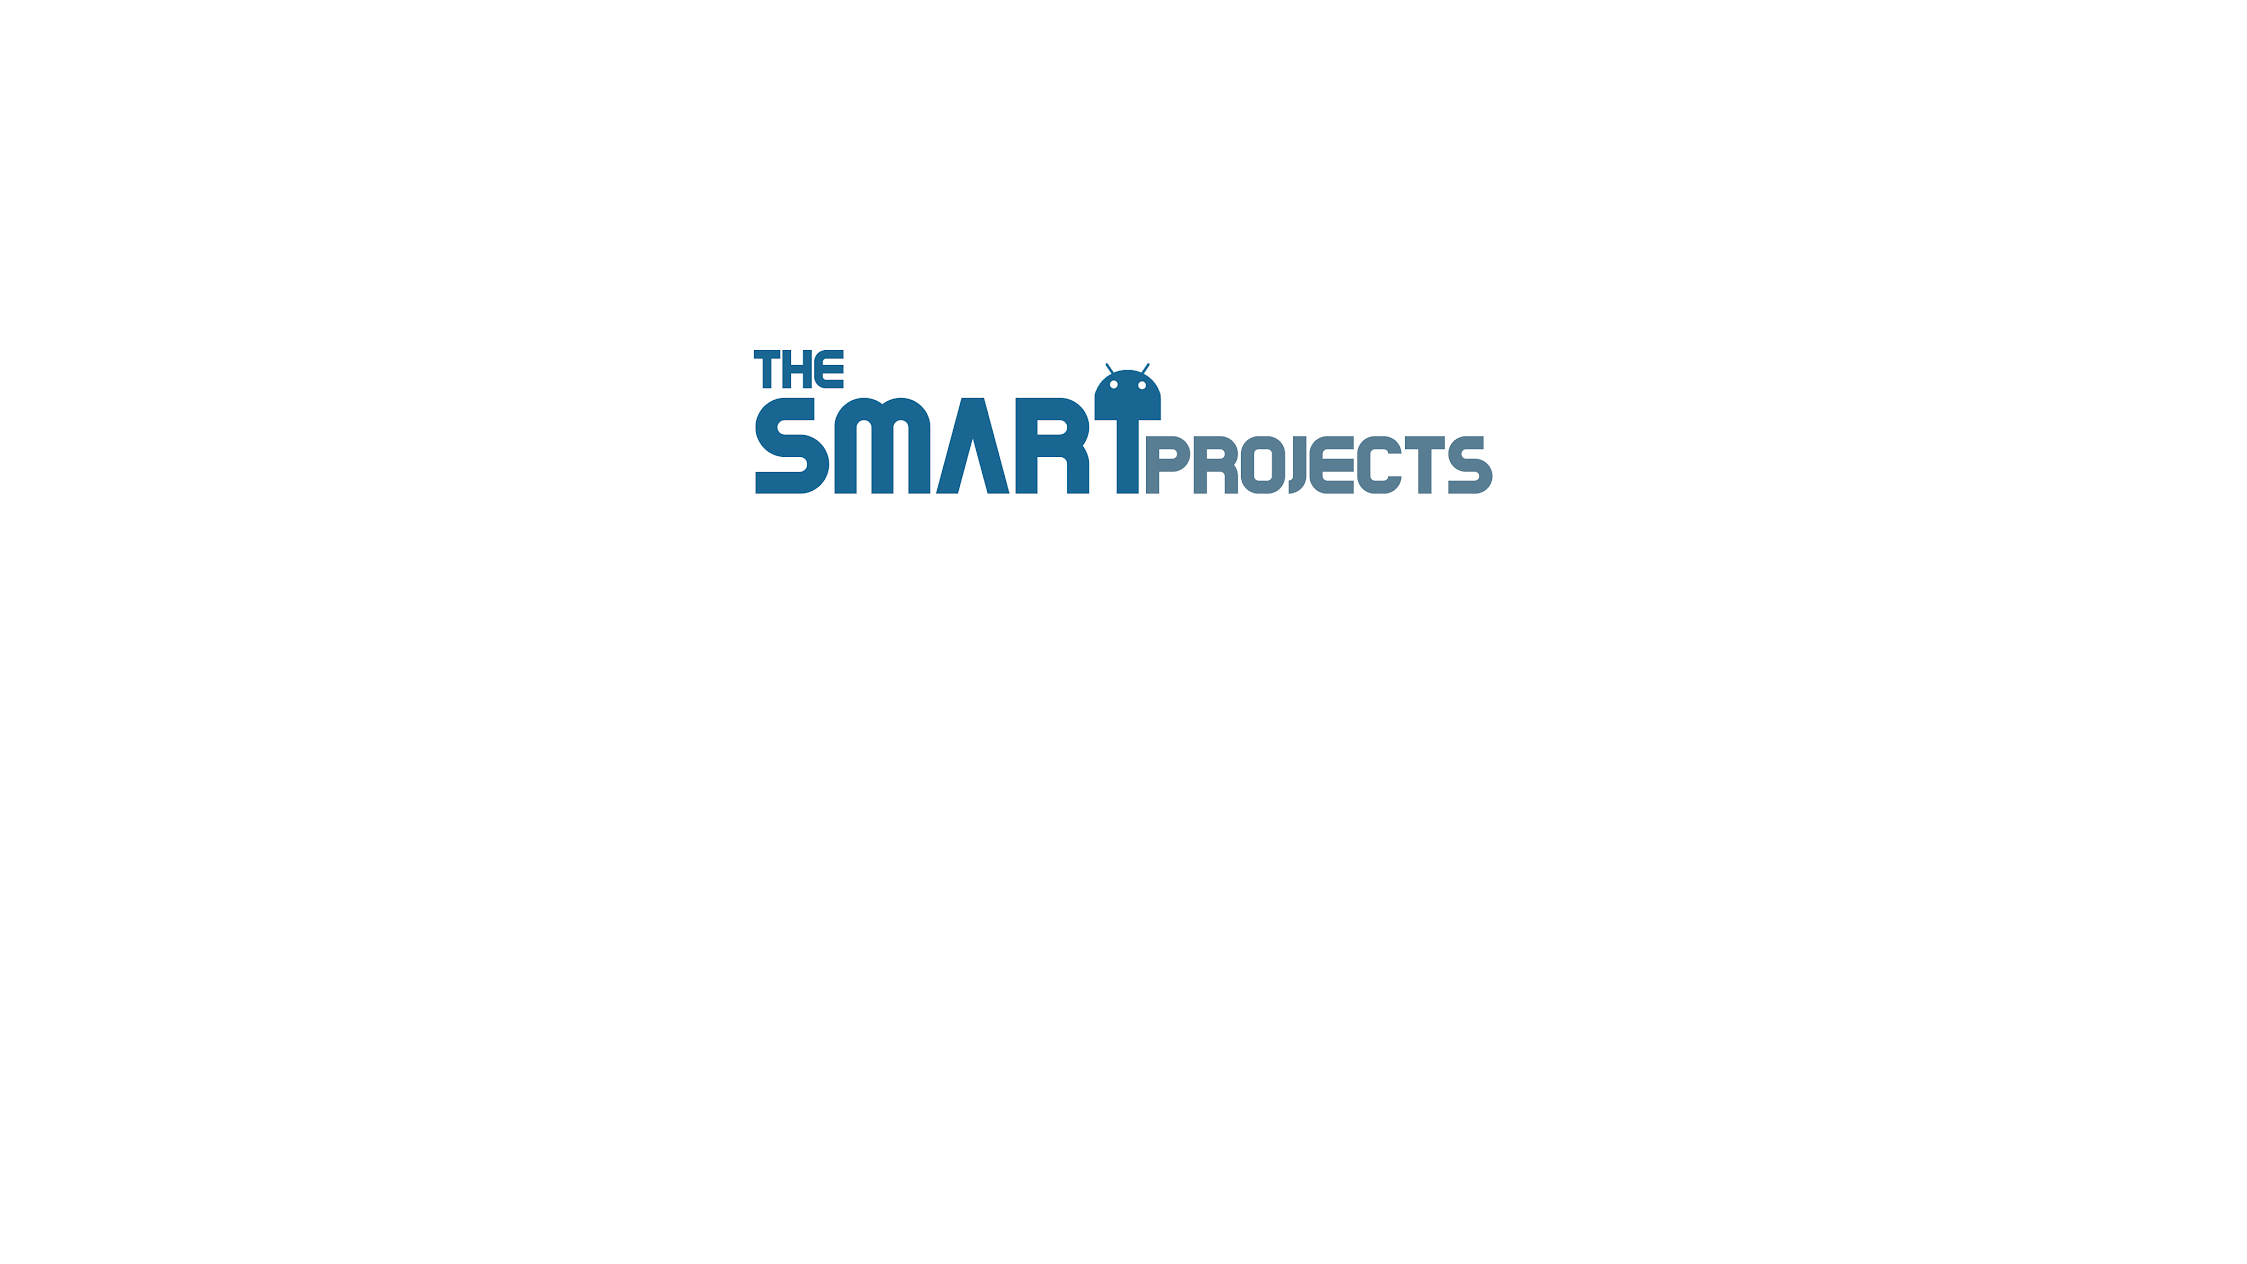 The Smart Projects